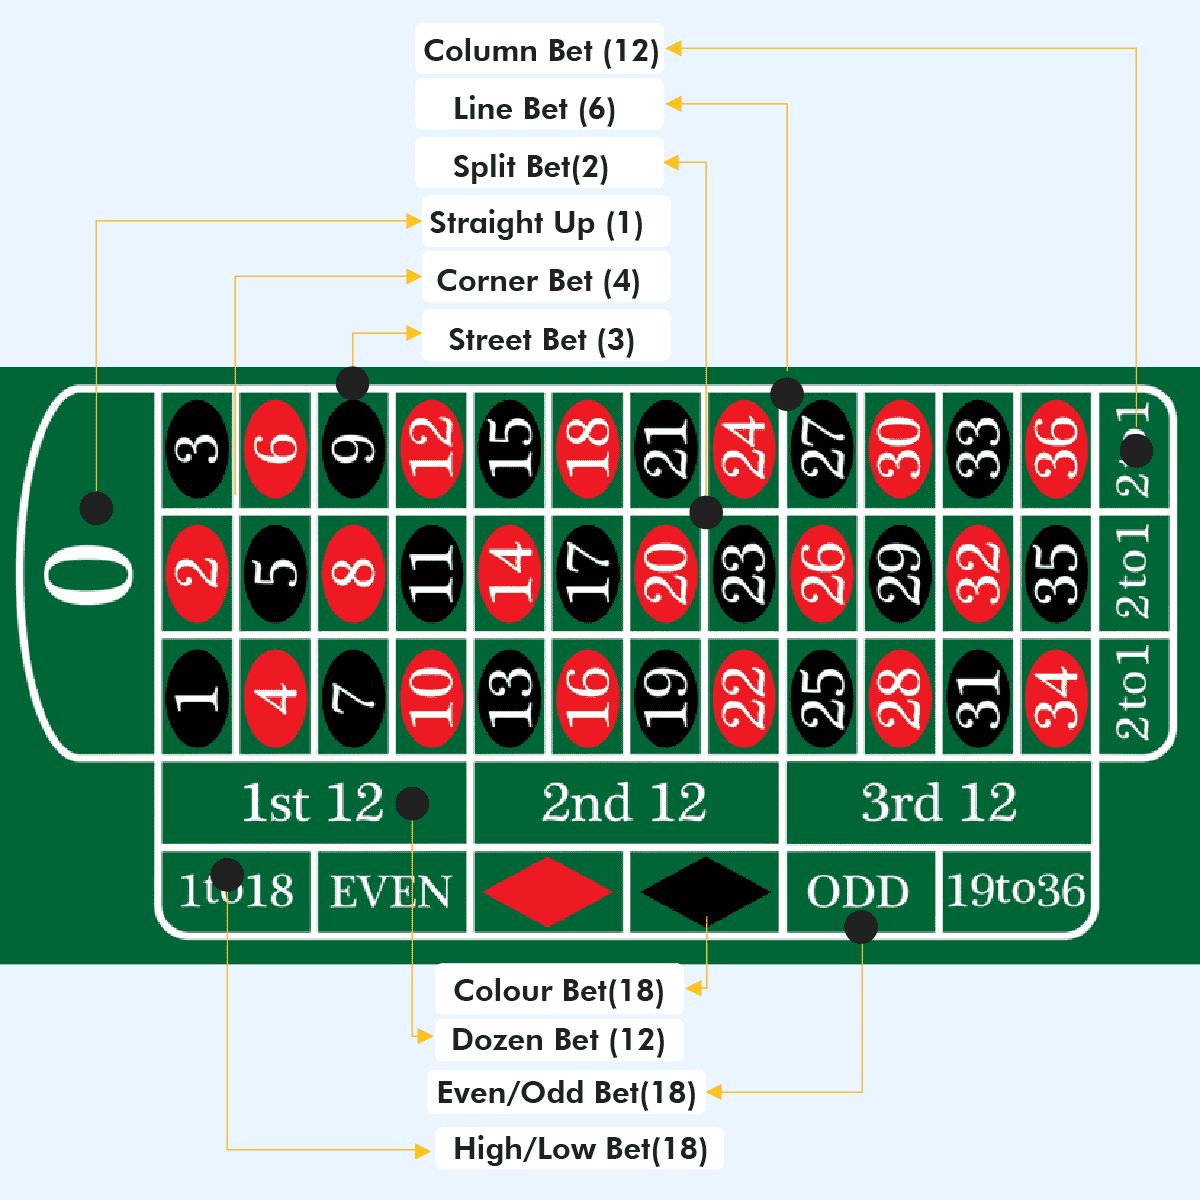 The Odds and Best Betting Strategy per Game